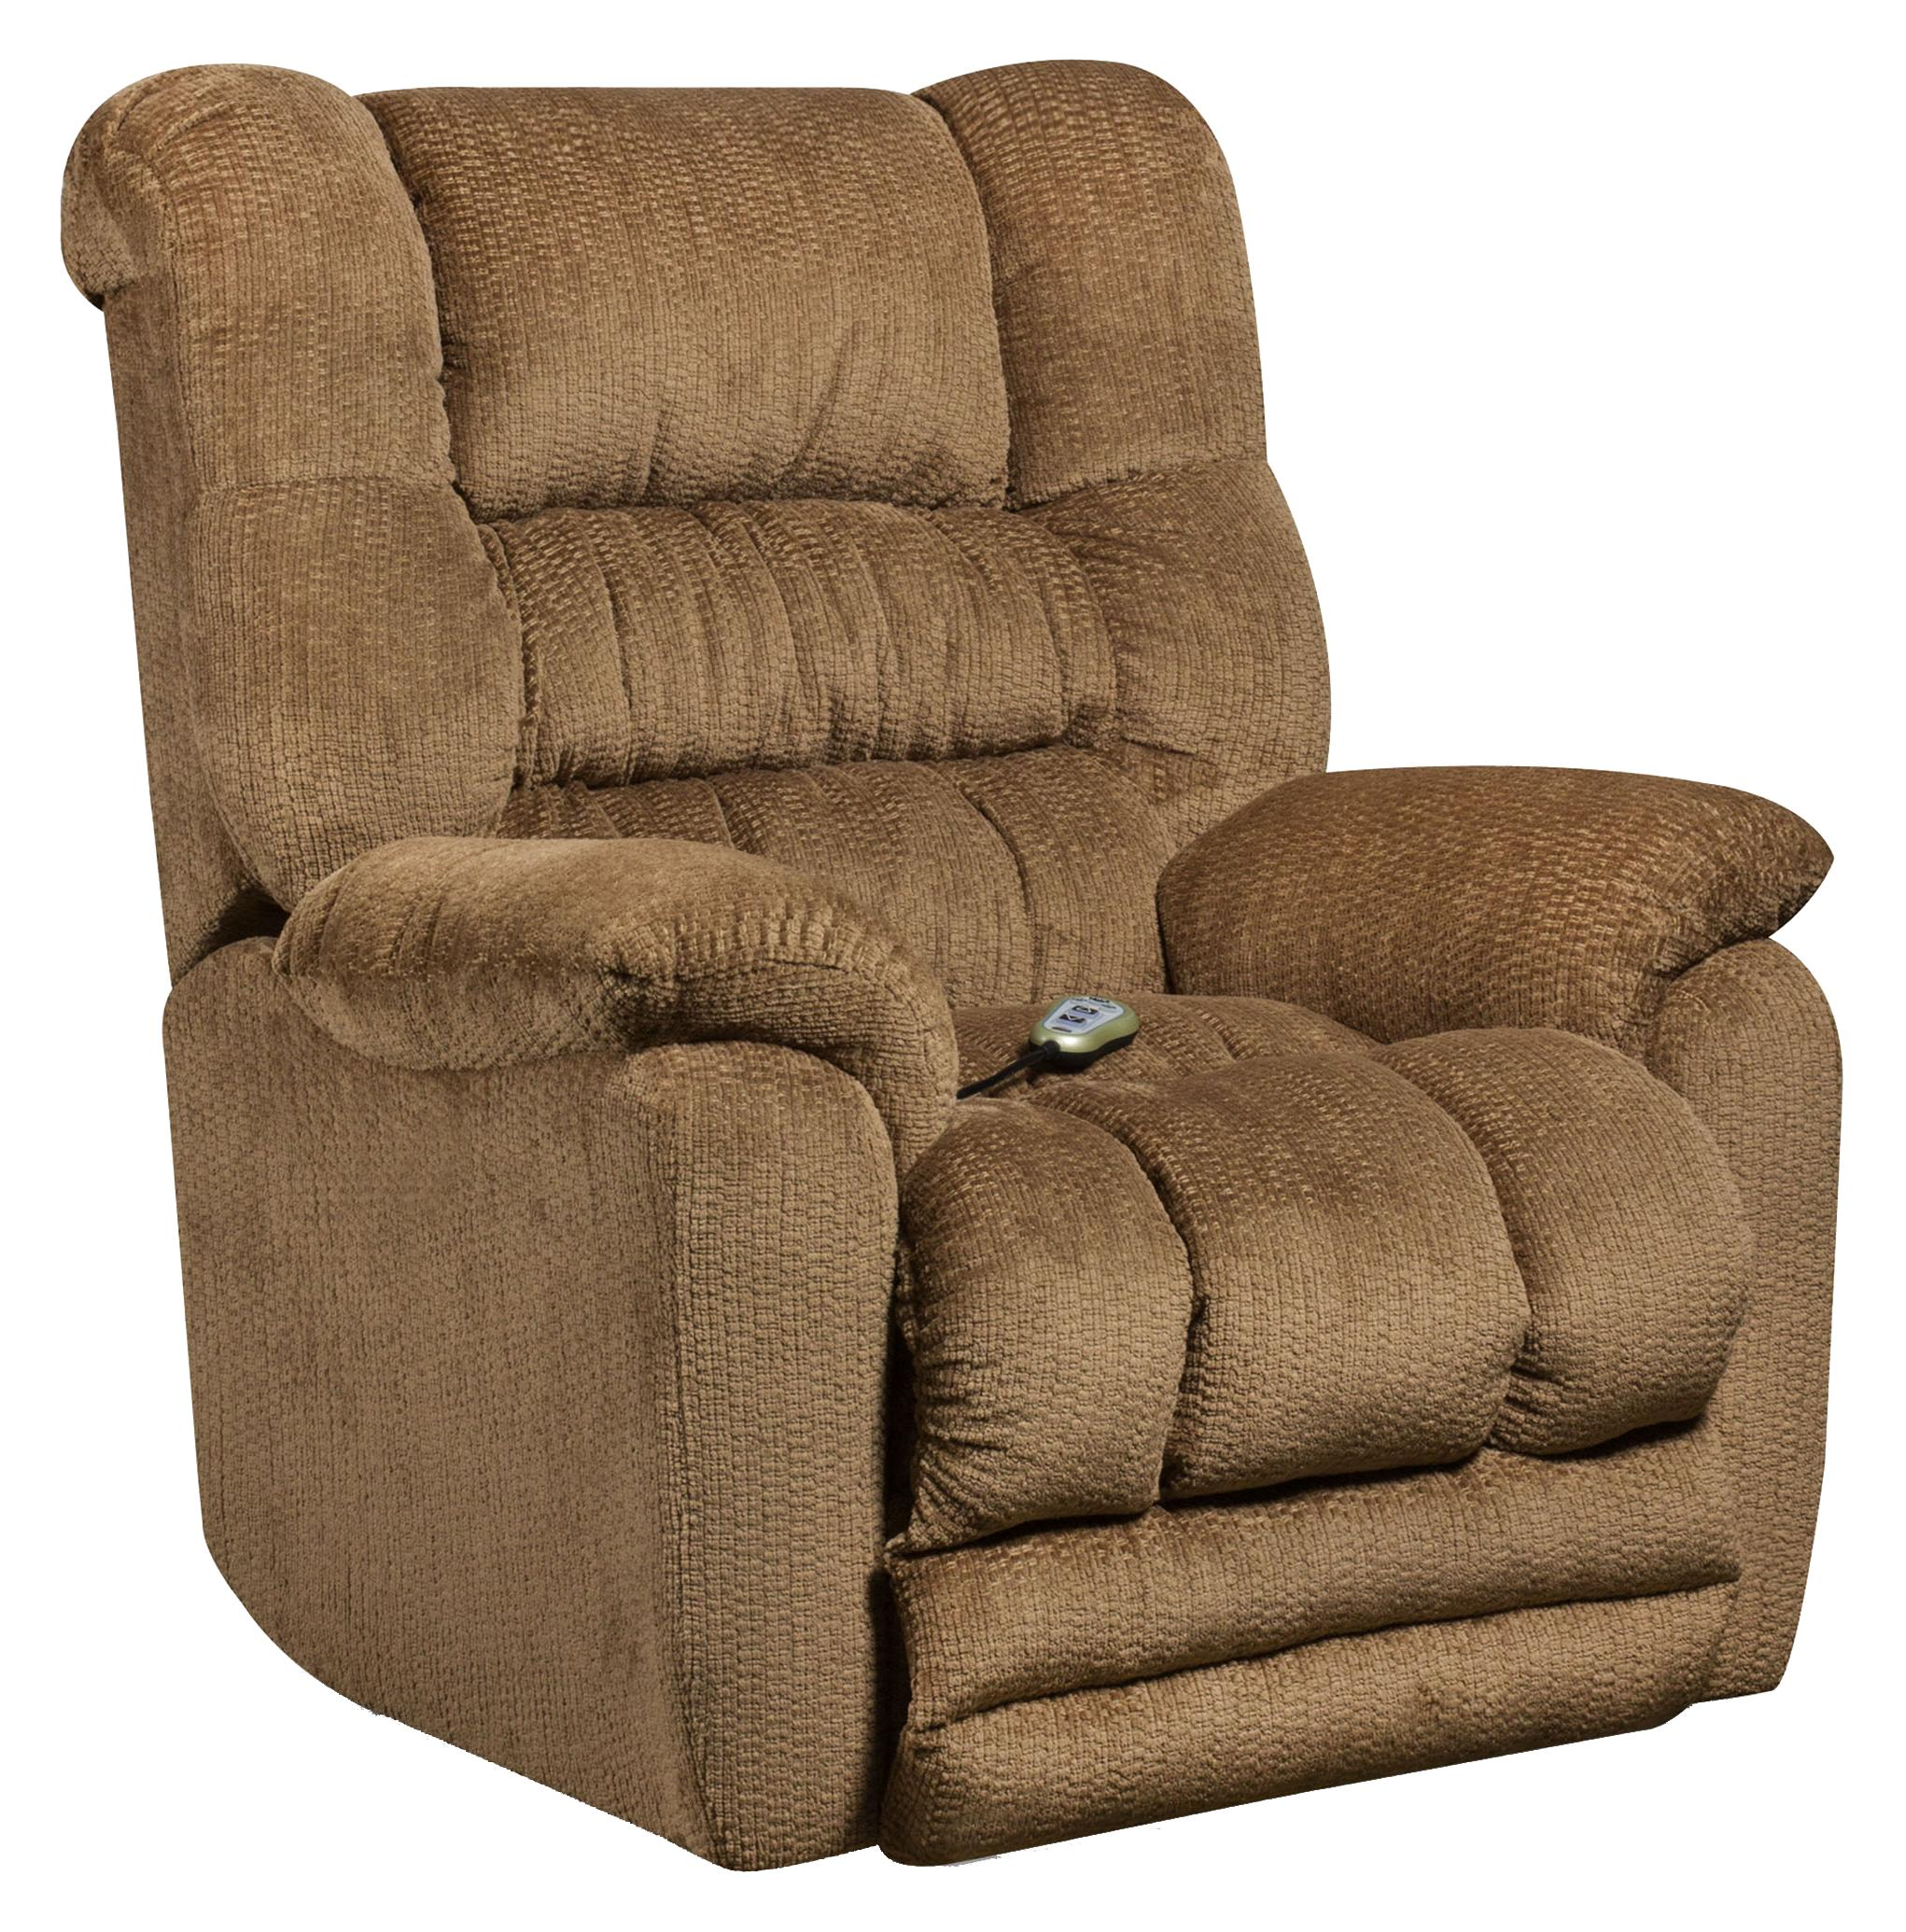 aldo mocha sofa set reclining recliners living value packages and recliner room power package product furniture loveseat